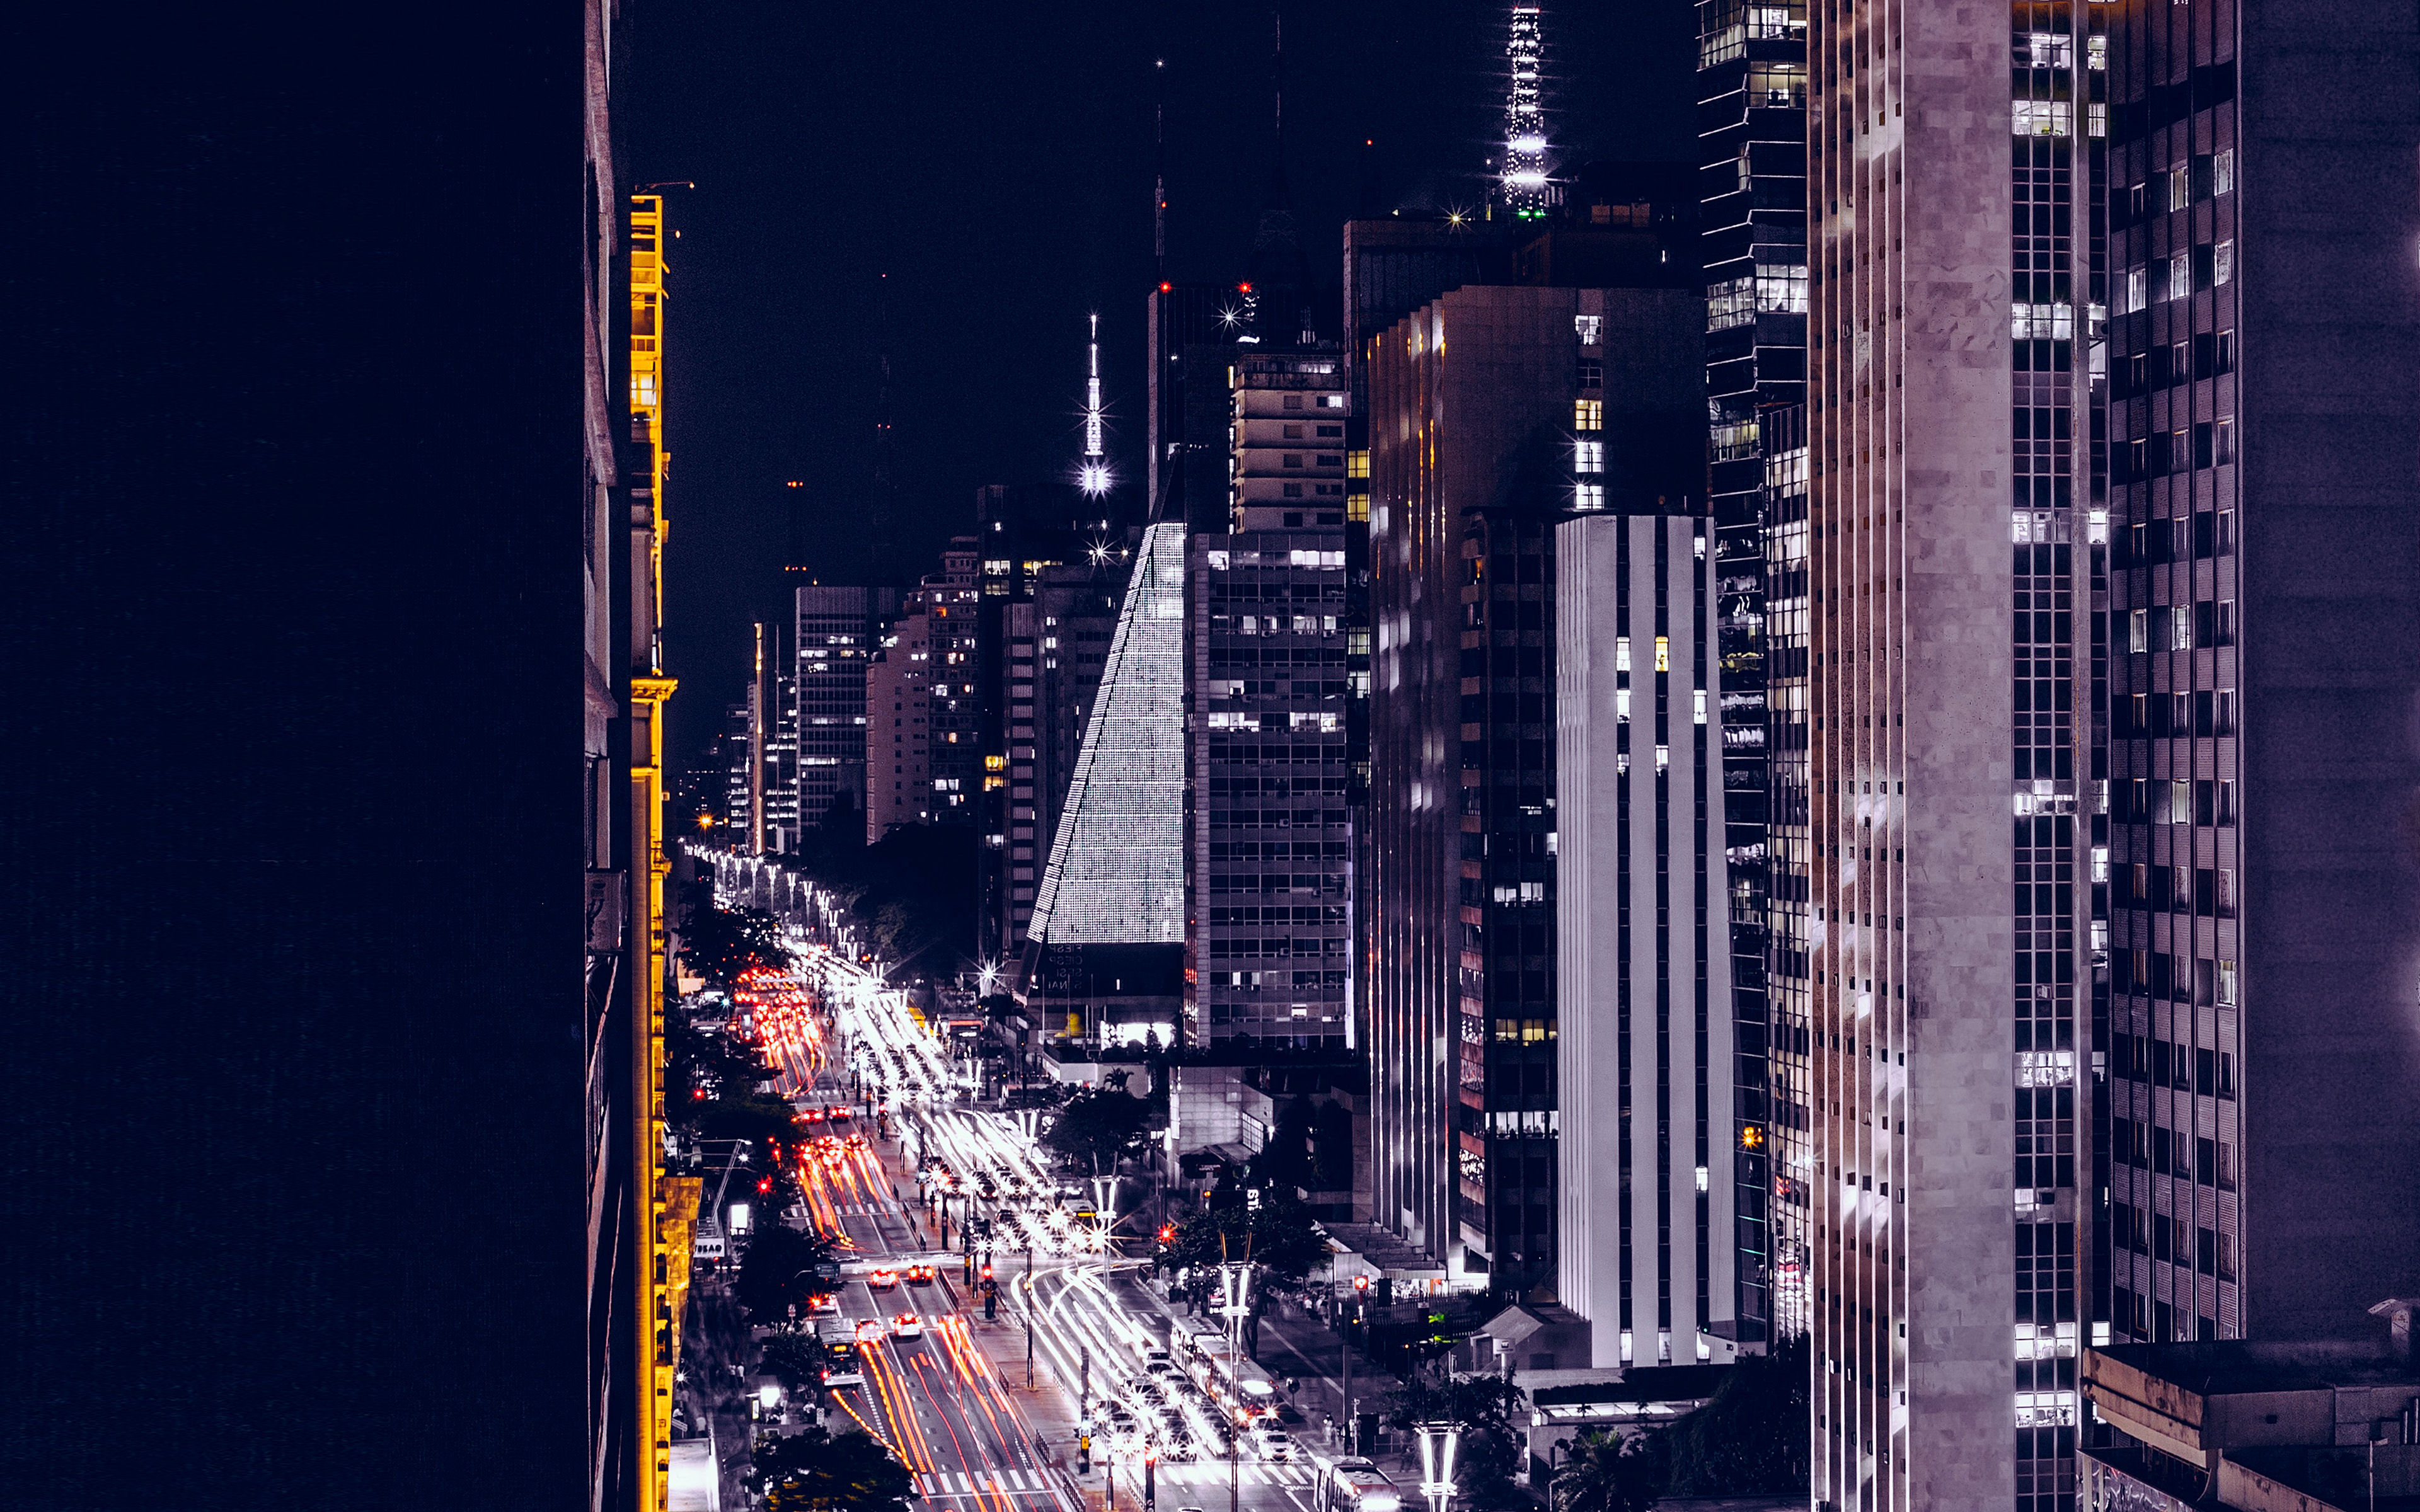 Fall Wallpaper For Macbook Pro Nf06 City Night View Urban Street Blue Wallpaper